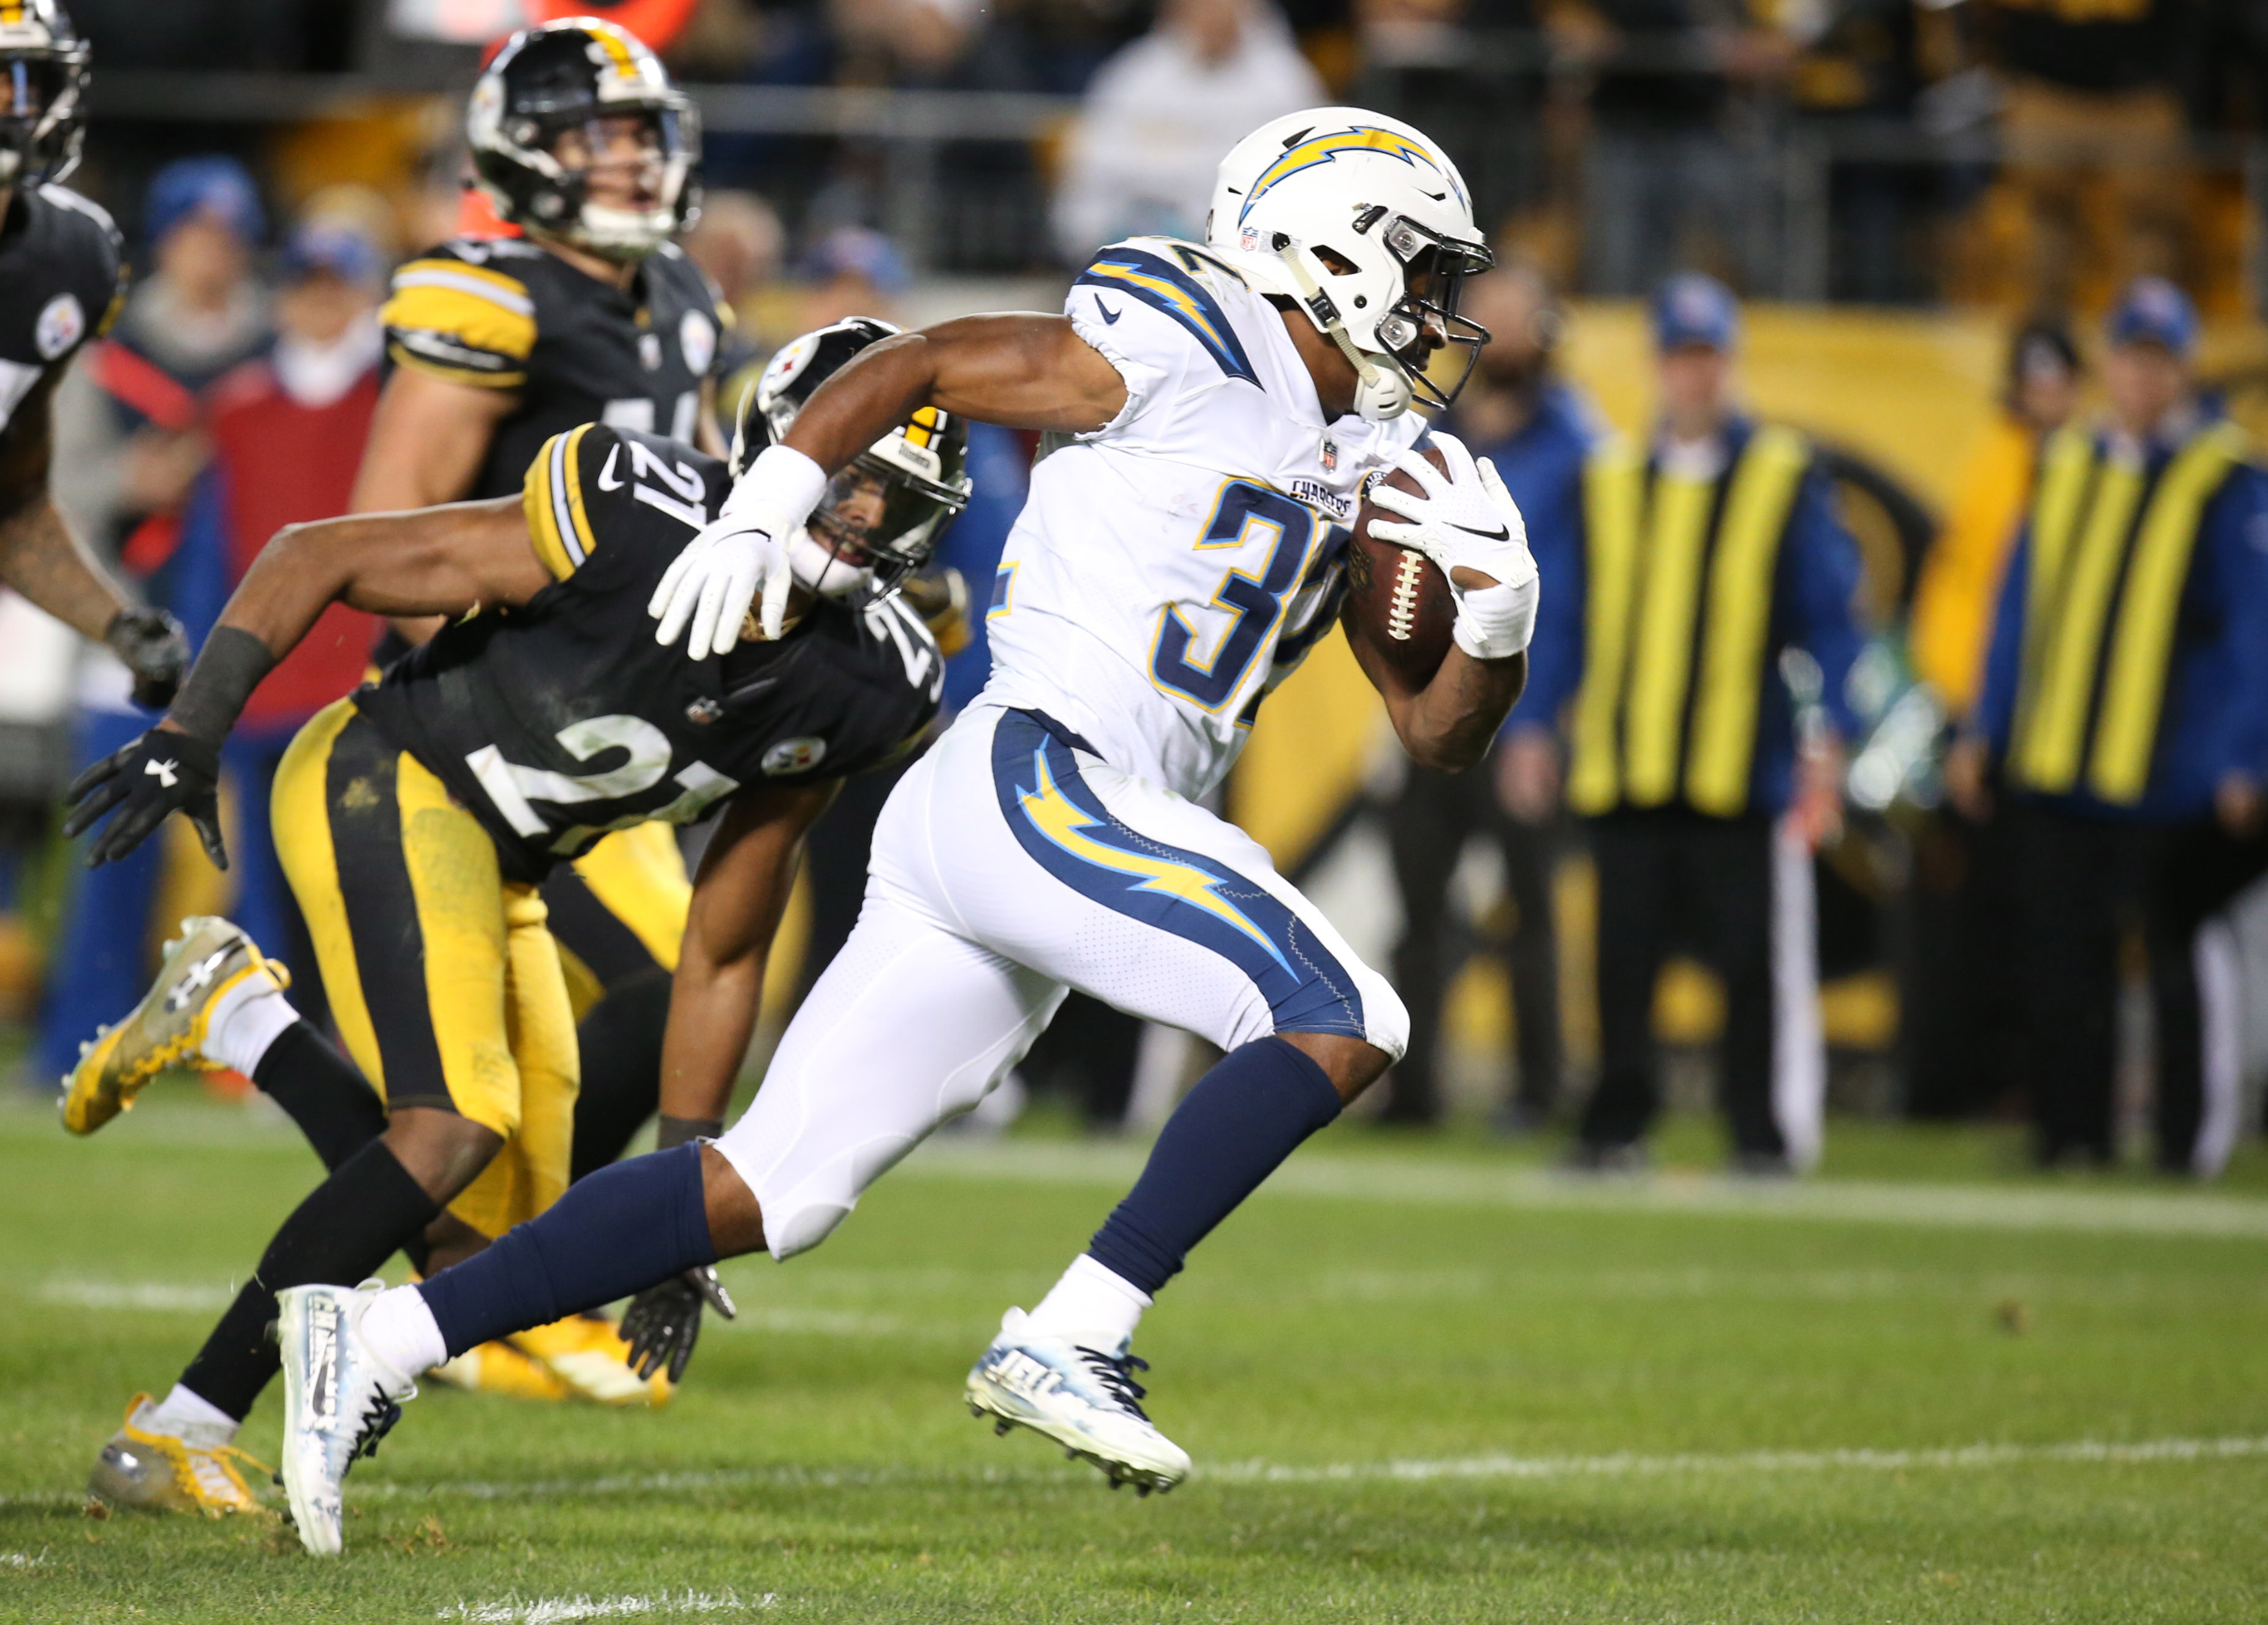 NFL: Los Angeles Chargers at Pittsburgh Steelers